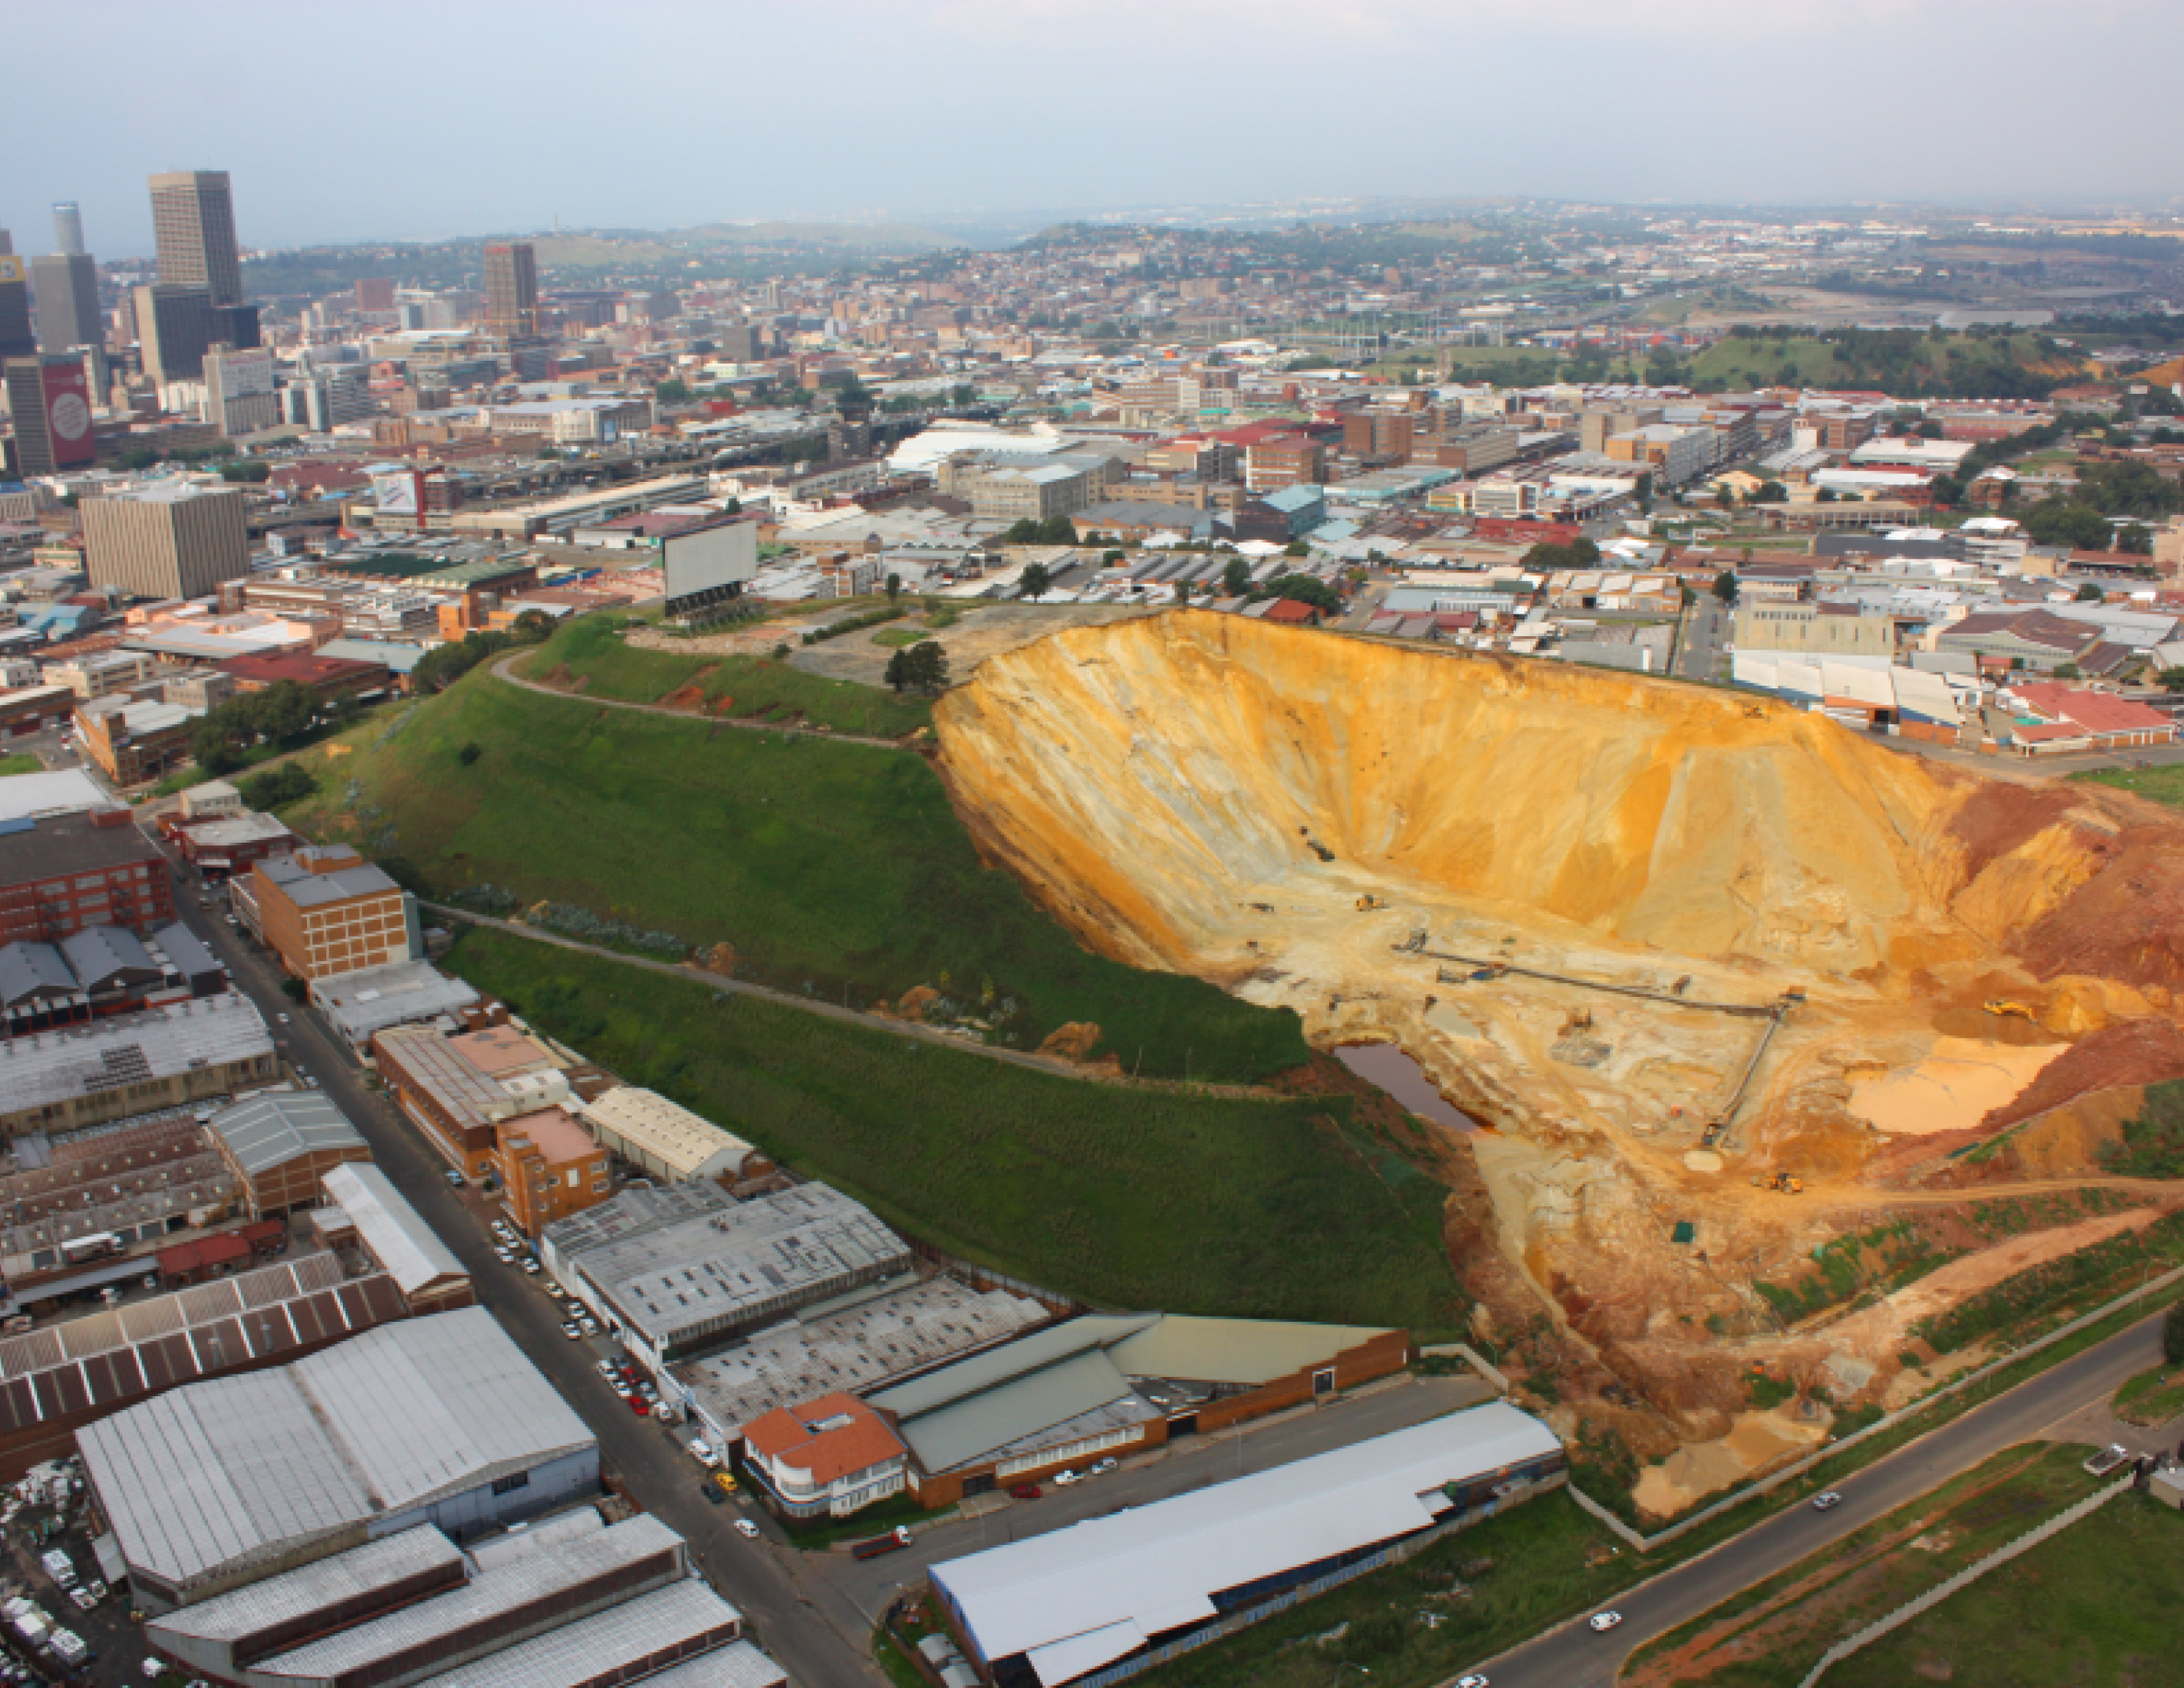 Atlas of Gold: Landscape Transformation of Johannesburg and the Witwatersrand Range